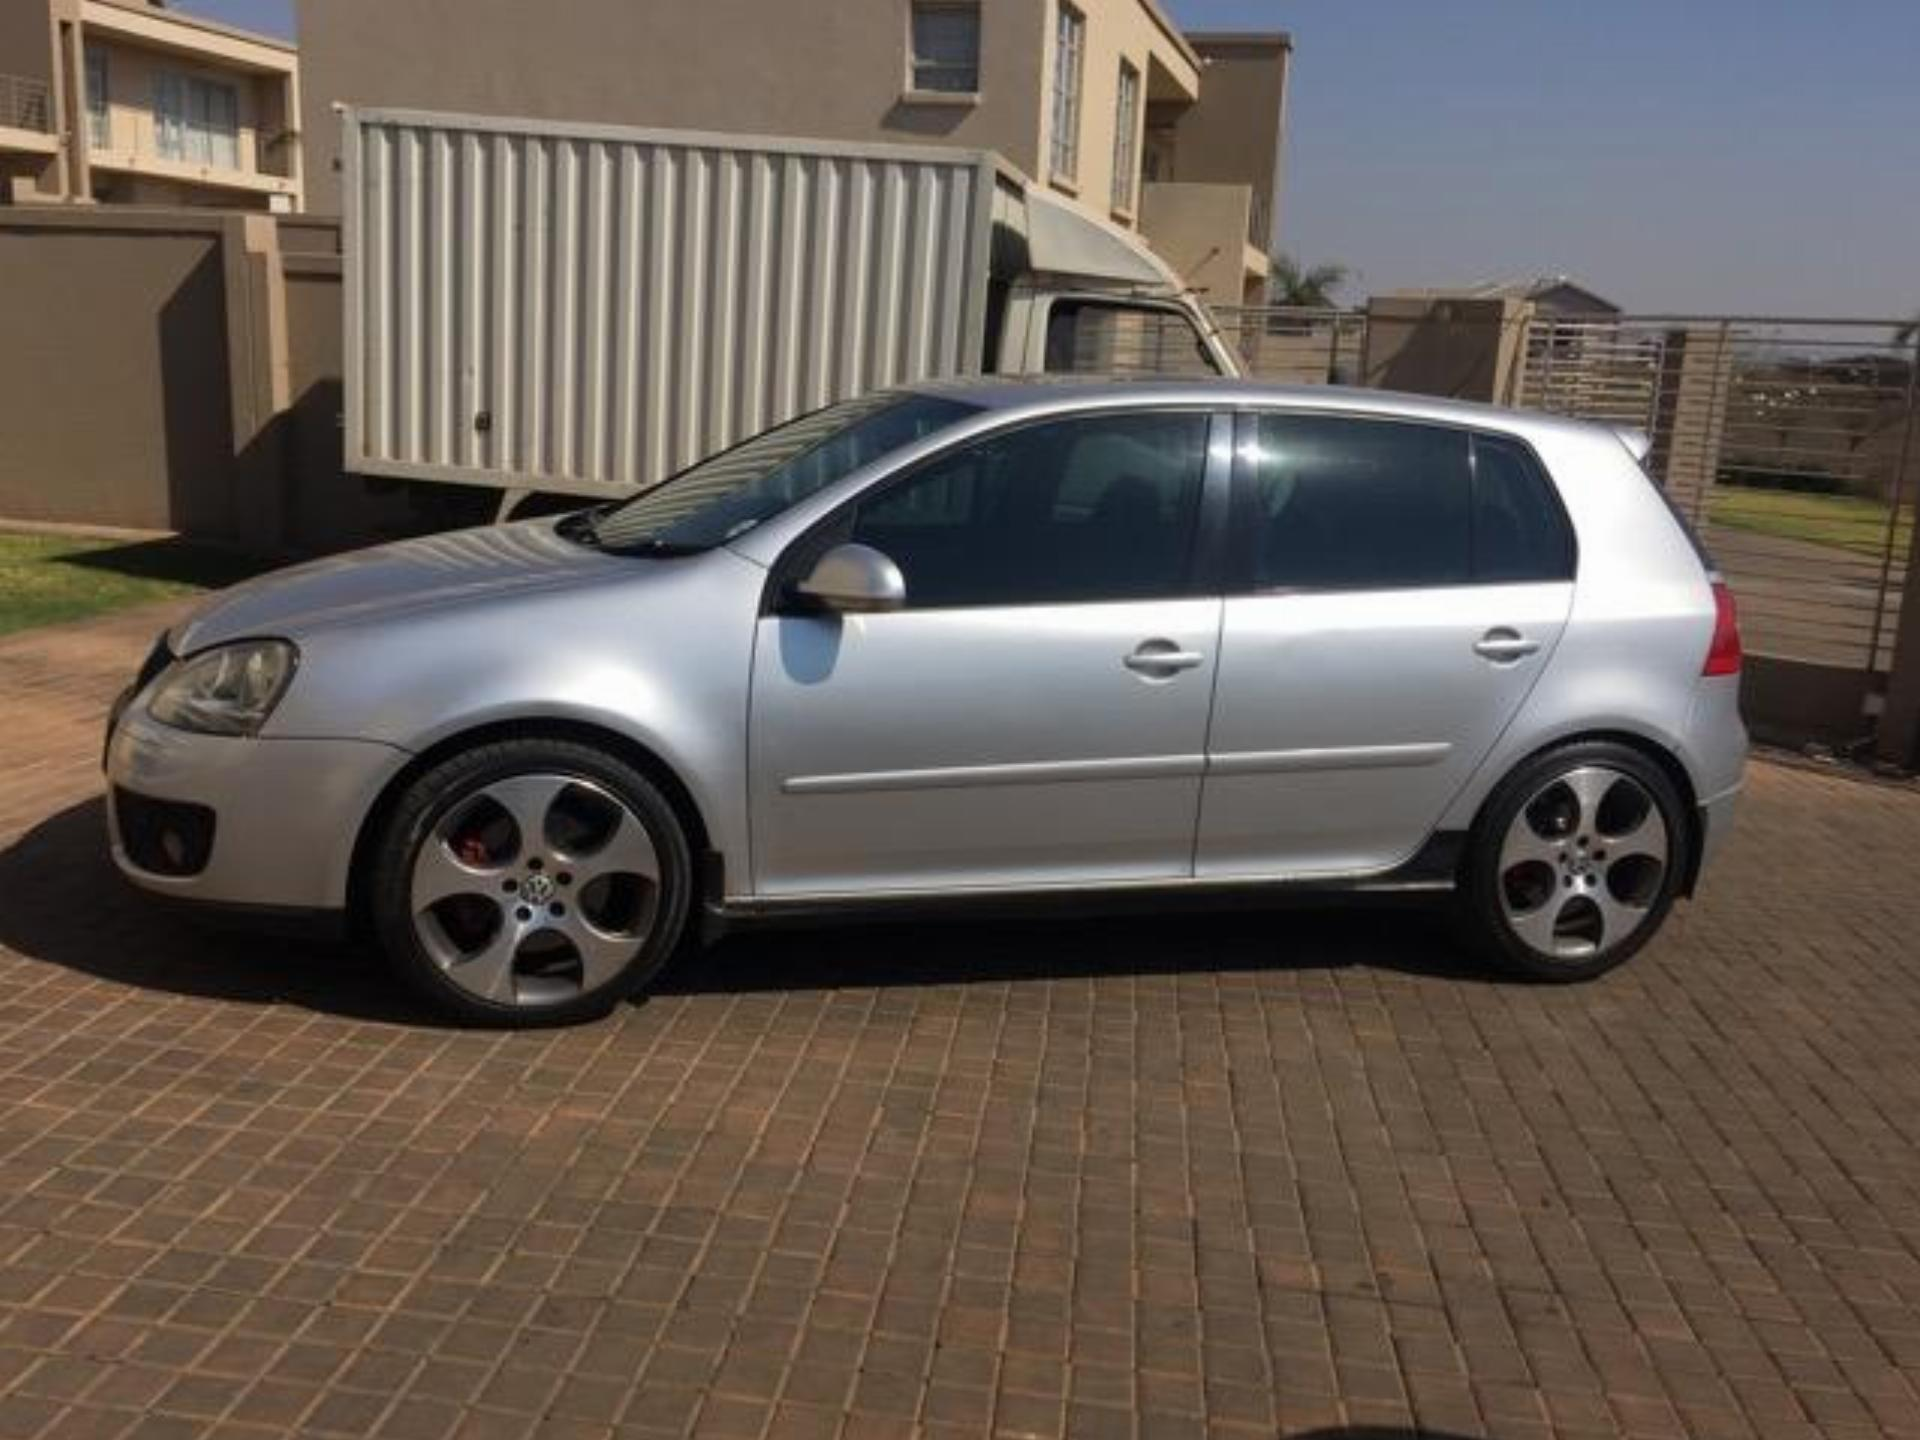 Used Vw Golf 5 Gti Dsg 2008 On Auction Pv1022798